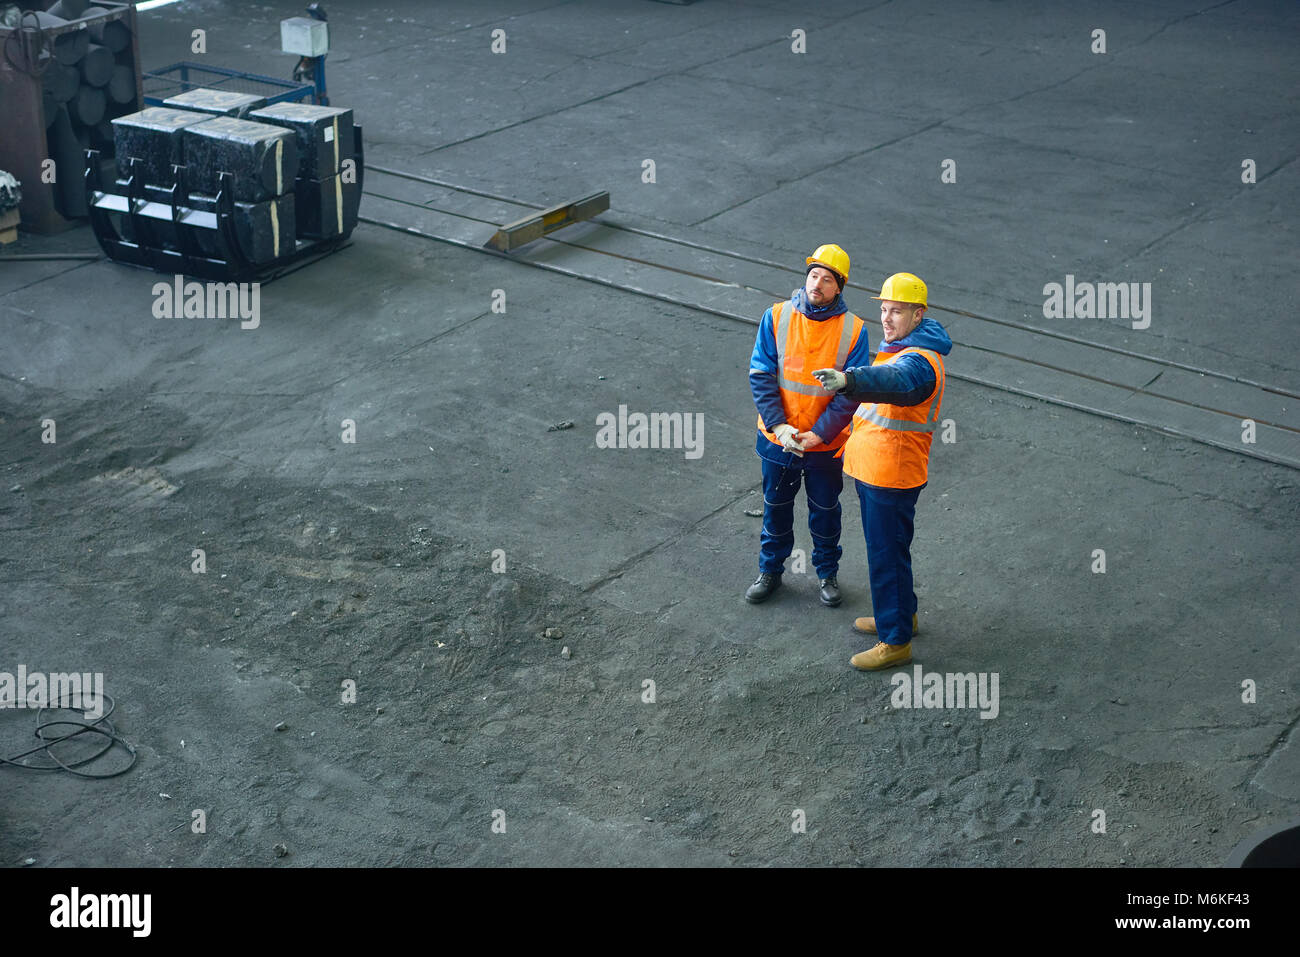 Teamwork at Production Department of Plant - Stock Image